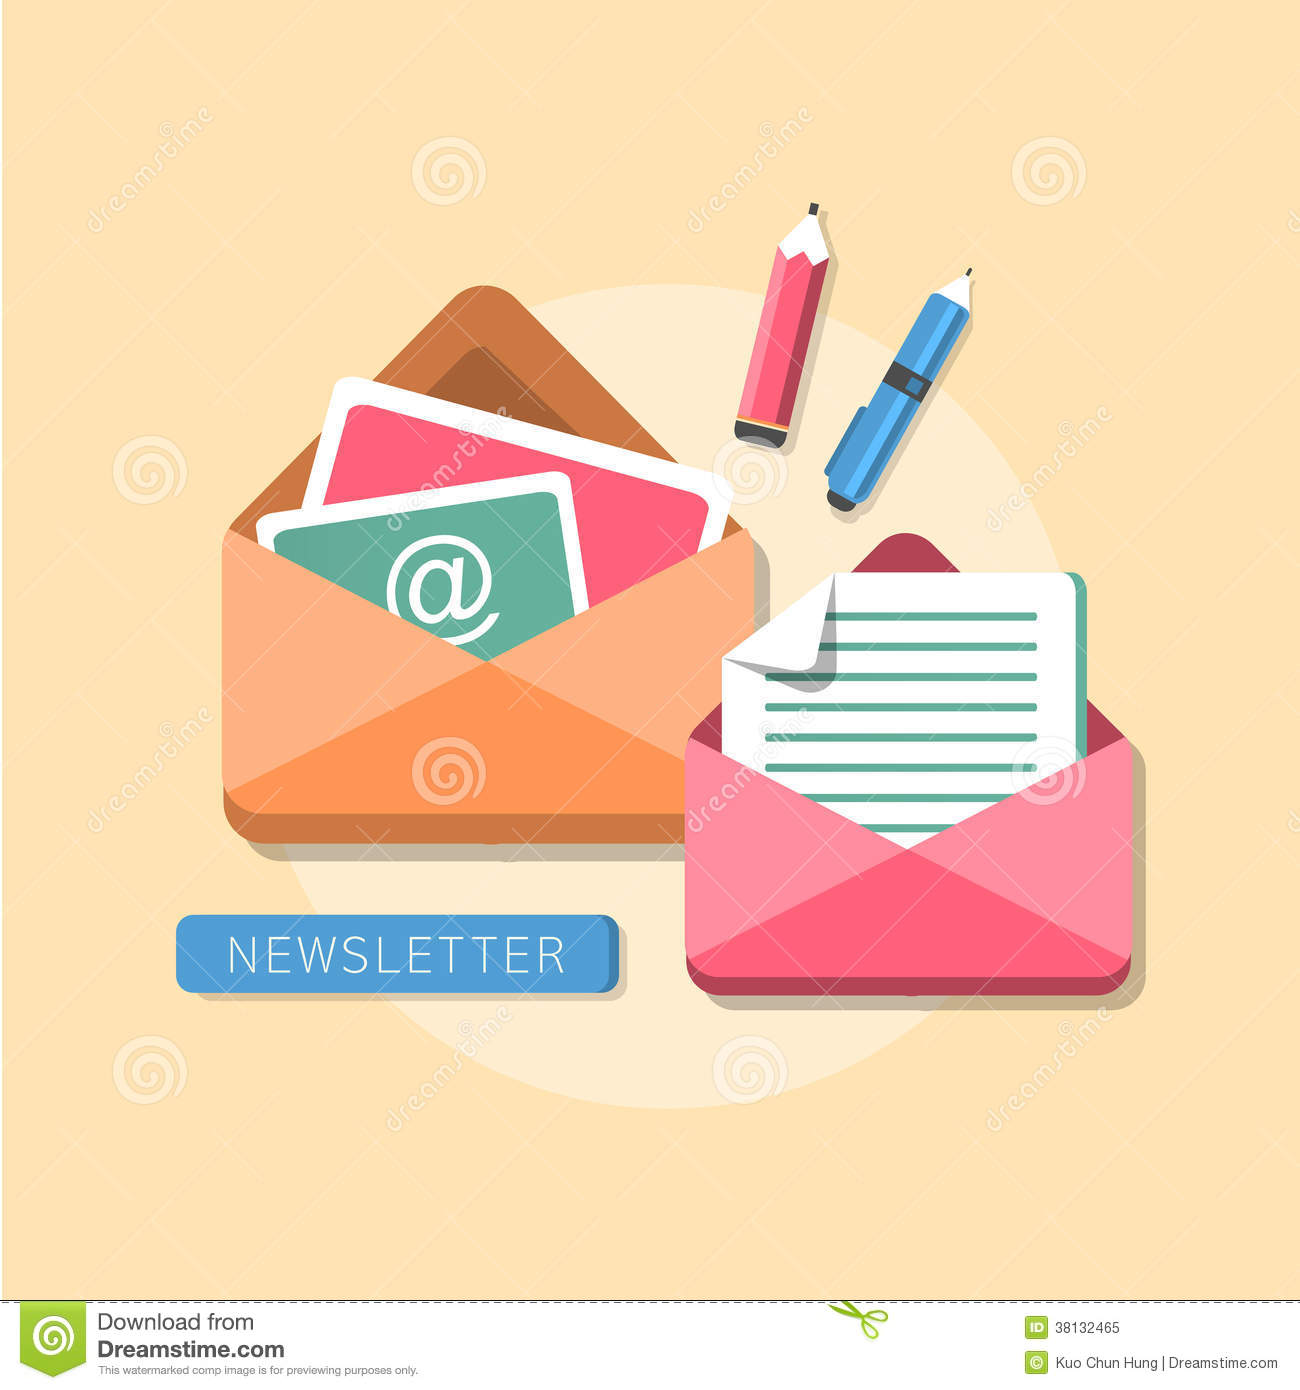 Flat Design Concept Of Newsletter Royalty Free Stock Photo